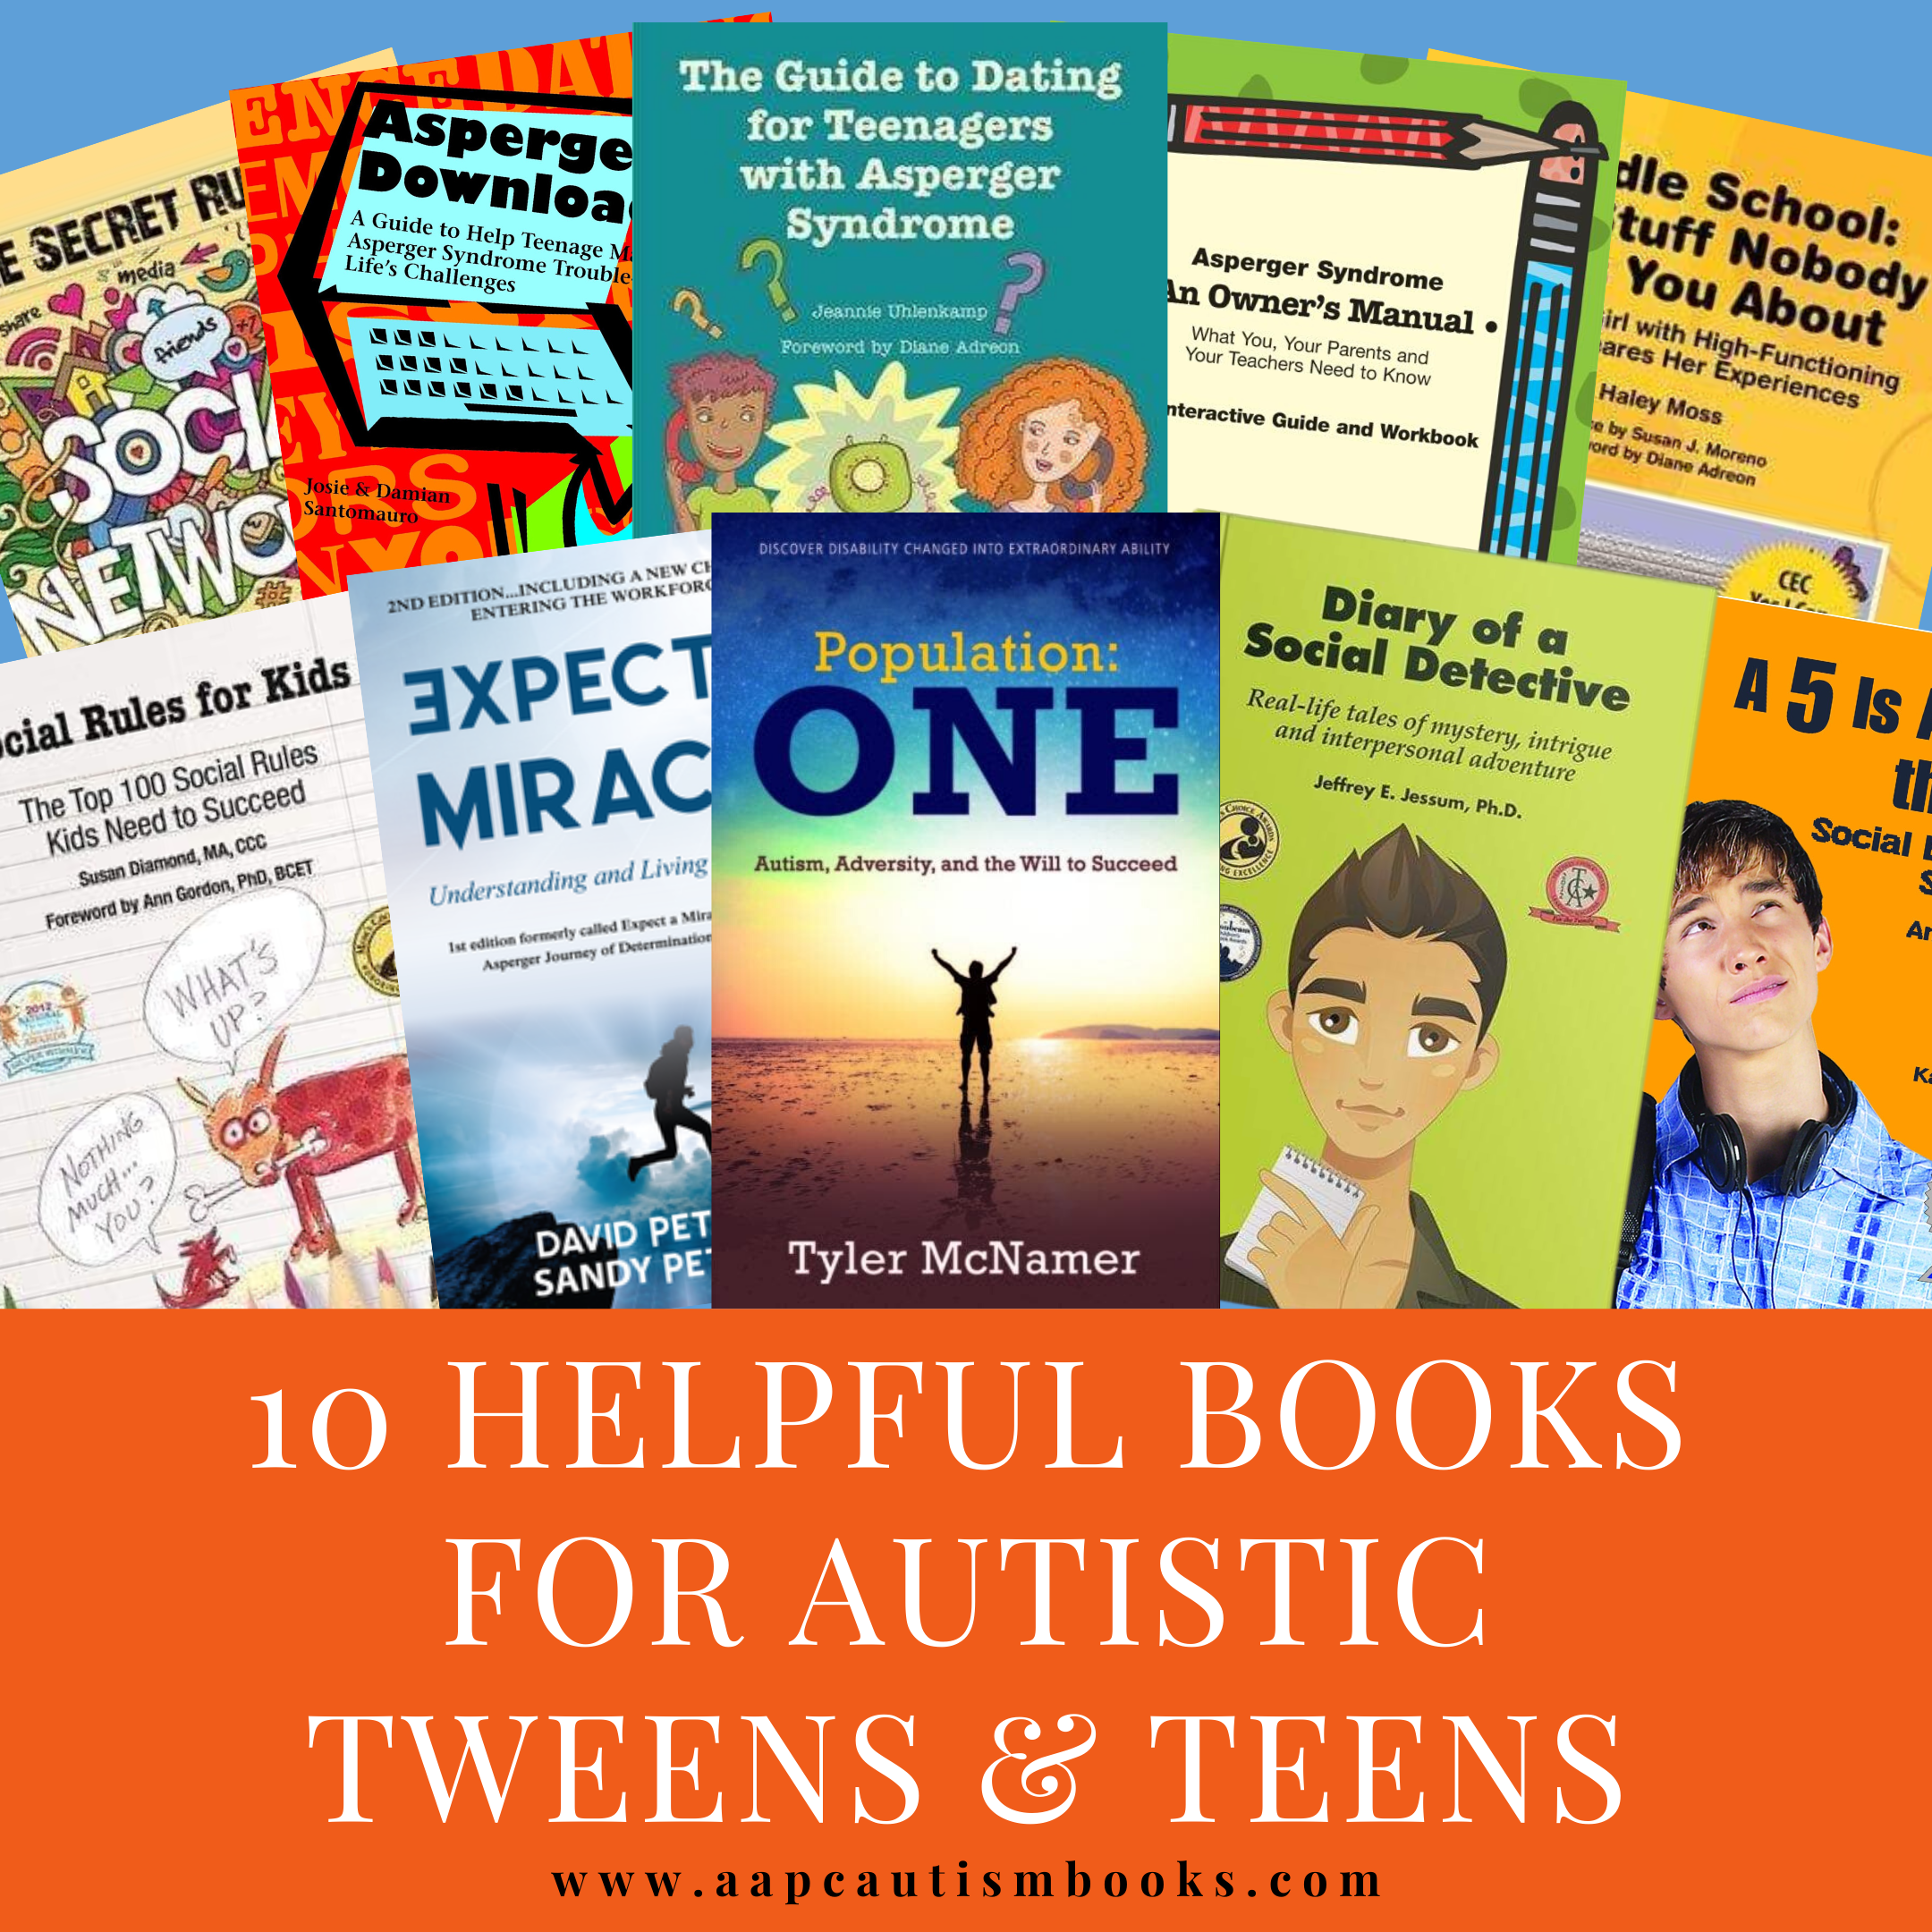 10 Helpful Books for Autistic Tweens and Teens